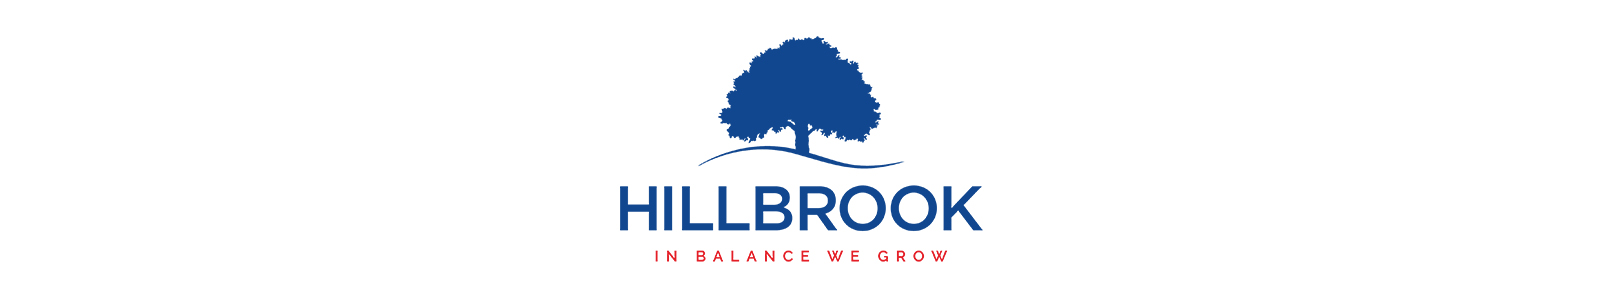 Hillbrook Anglican School - Case Study